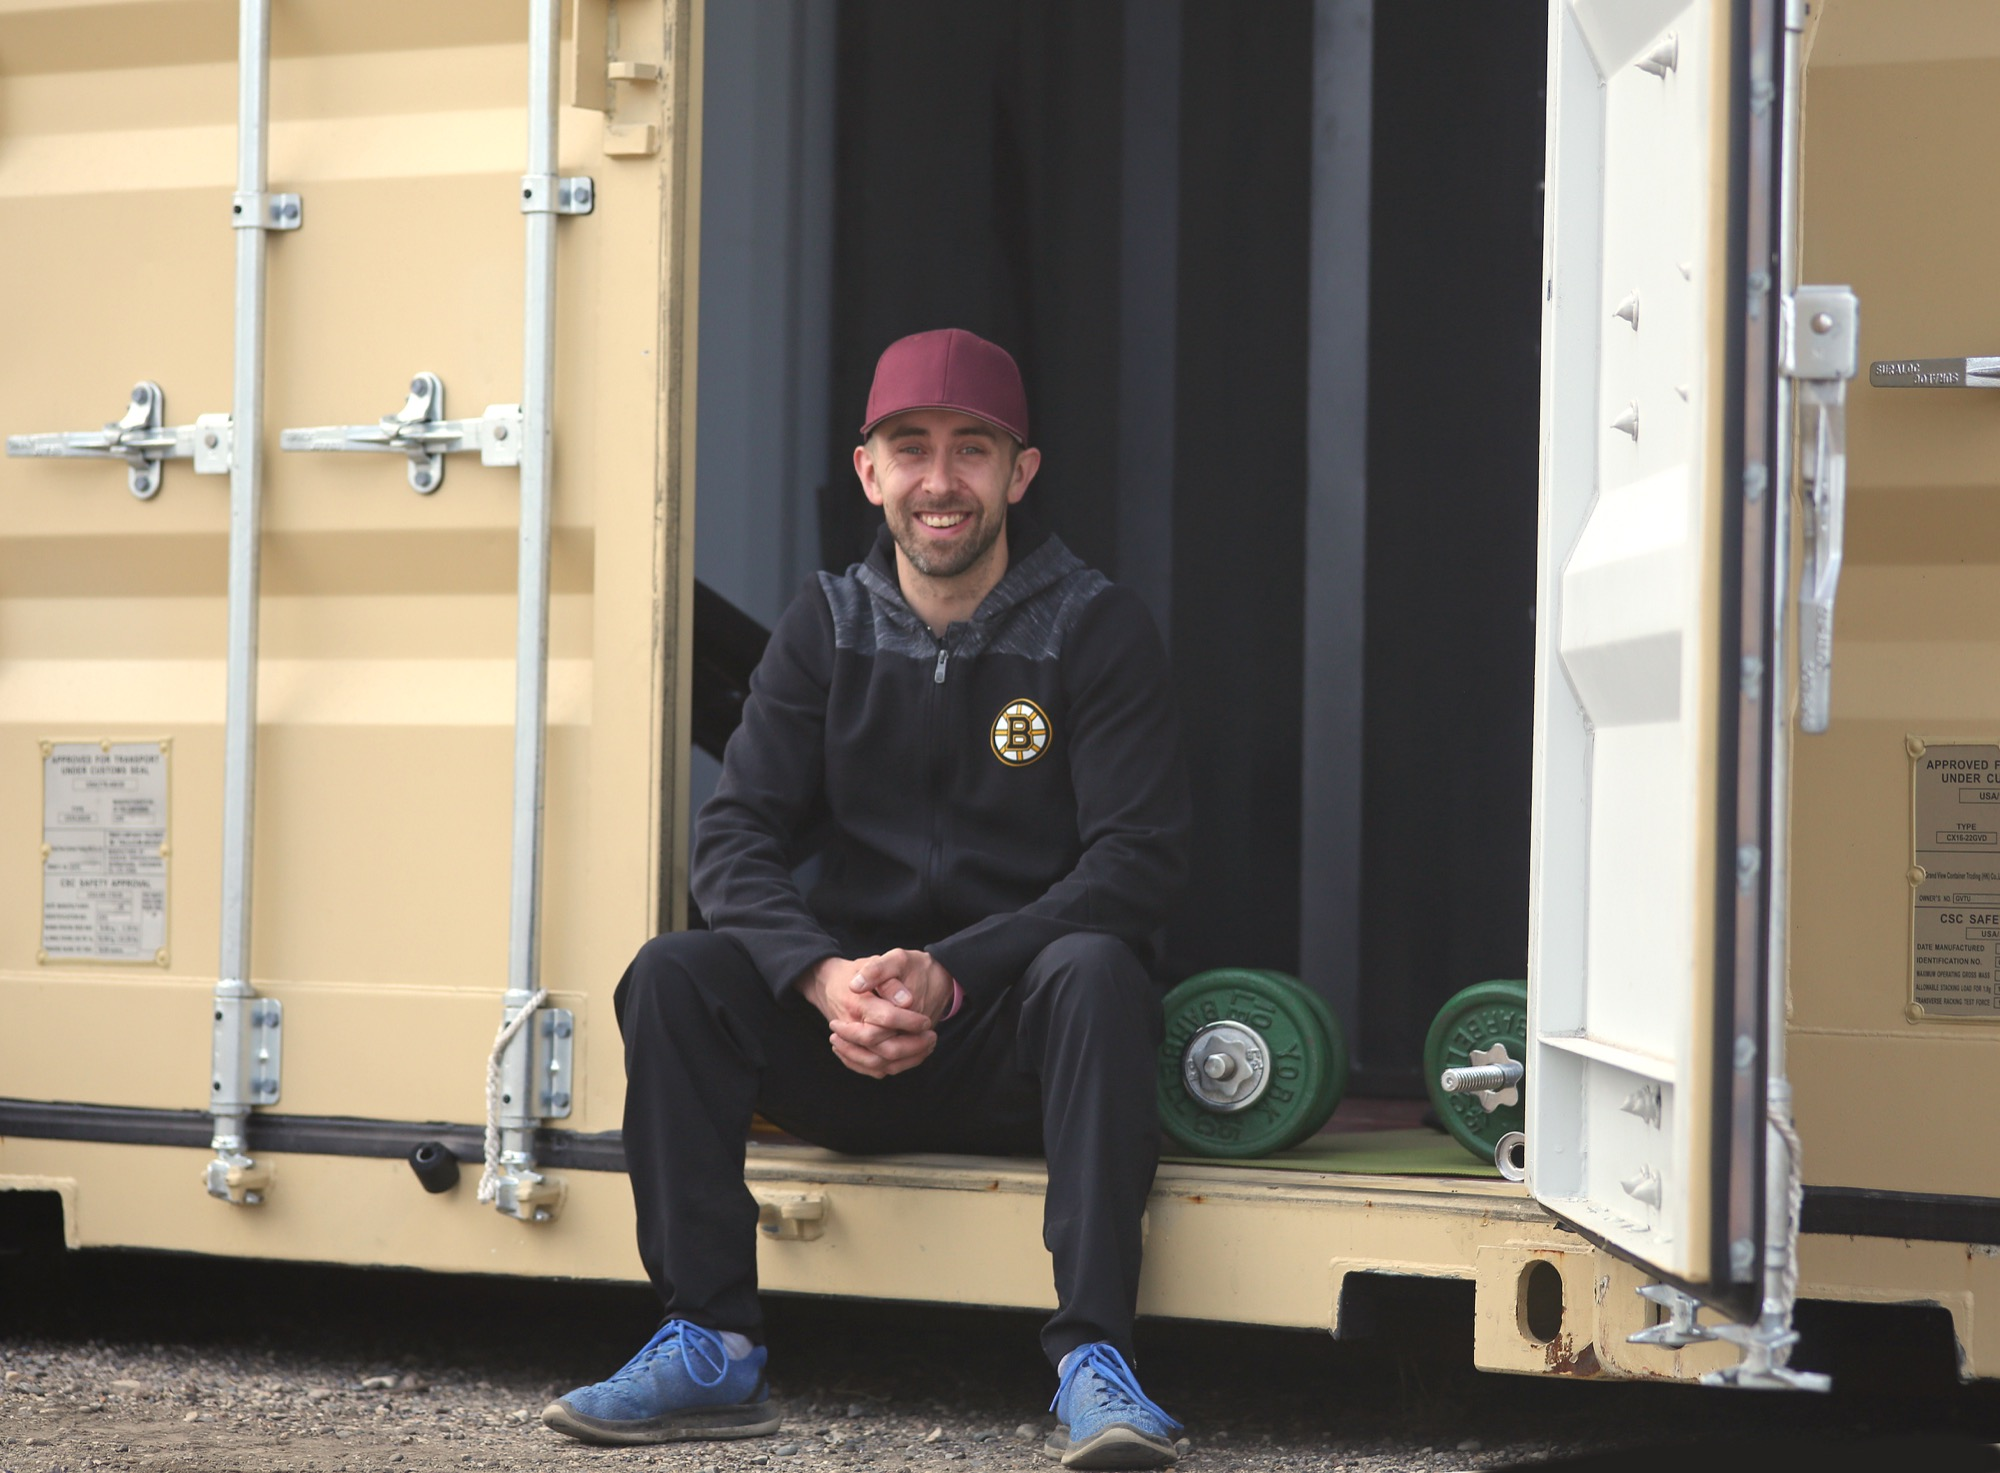 Ryan Pandolfi is seen Saturday at his makeshift storage container gym, which he put together southeast of Brandon after the latest round of health restrictions shuttered gyms and fitness centres for the balance of the month.